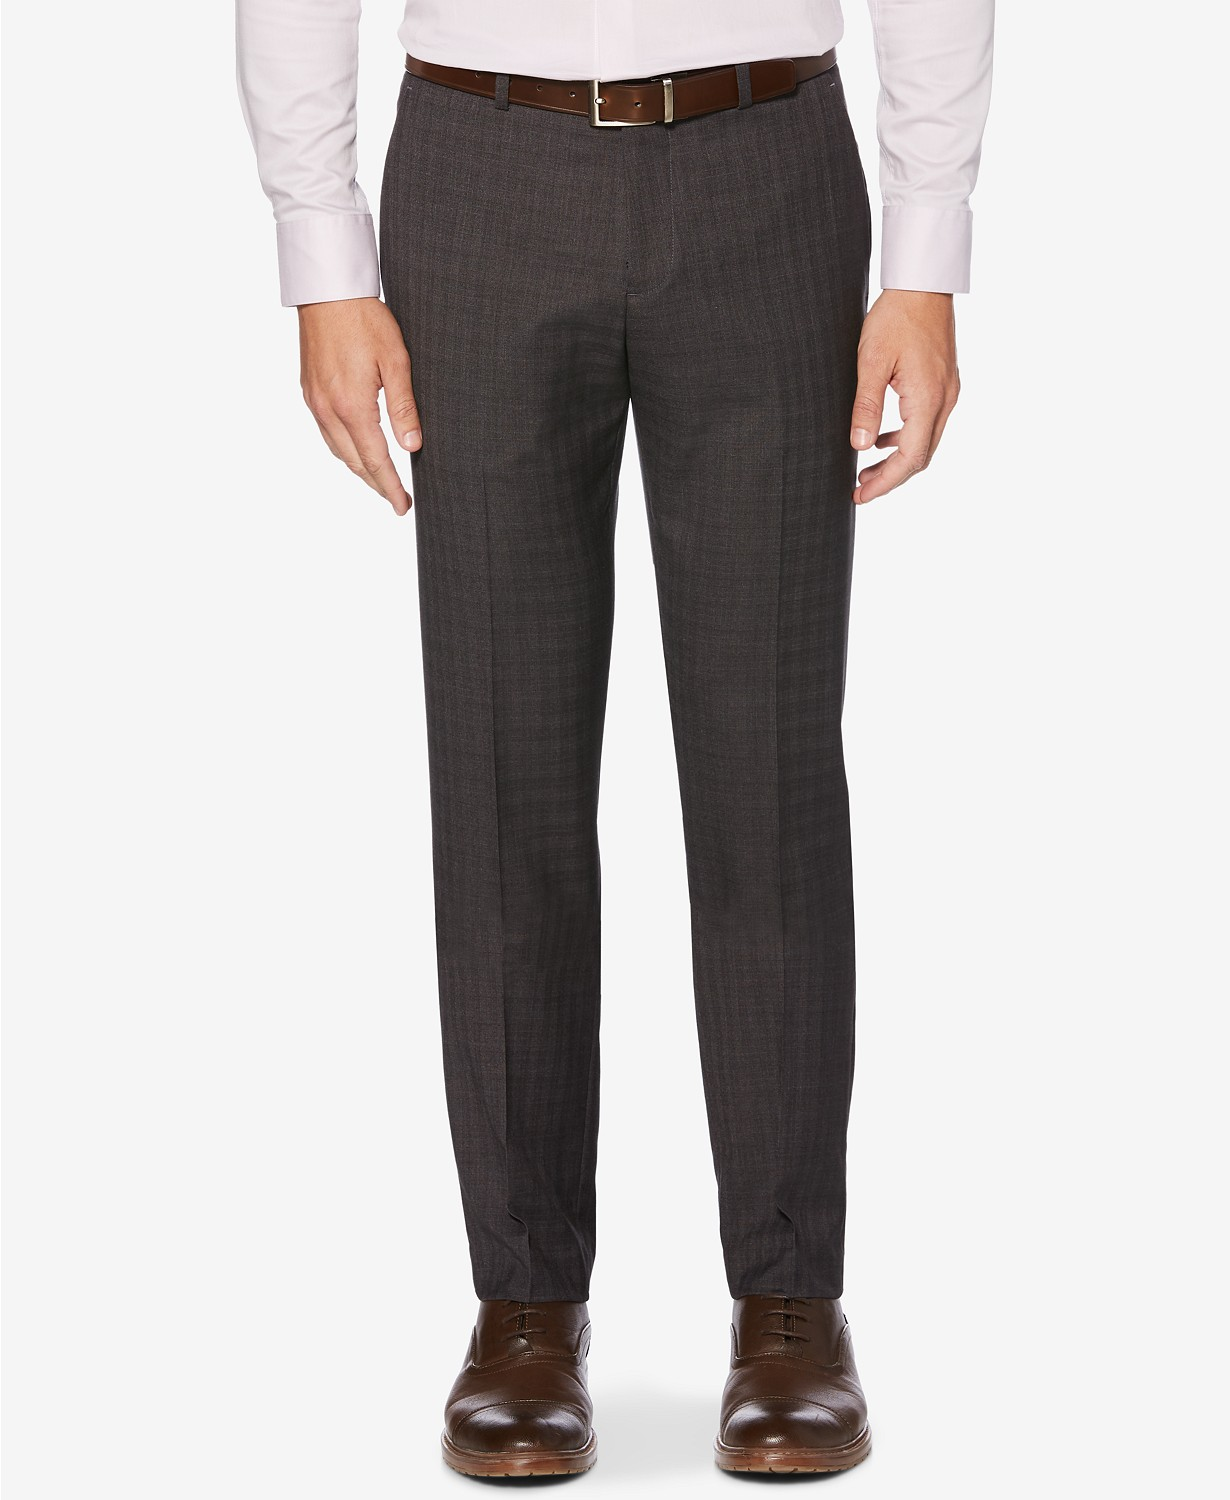 Perry Ellis Portfolio Men's Slim-Fit Stretch Dress Pants